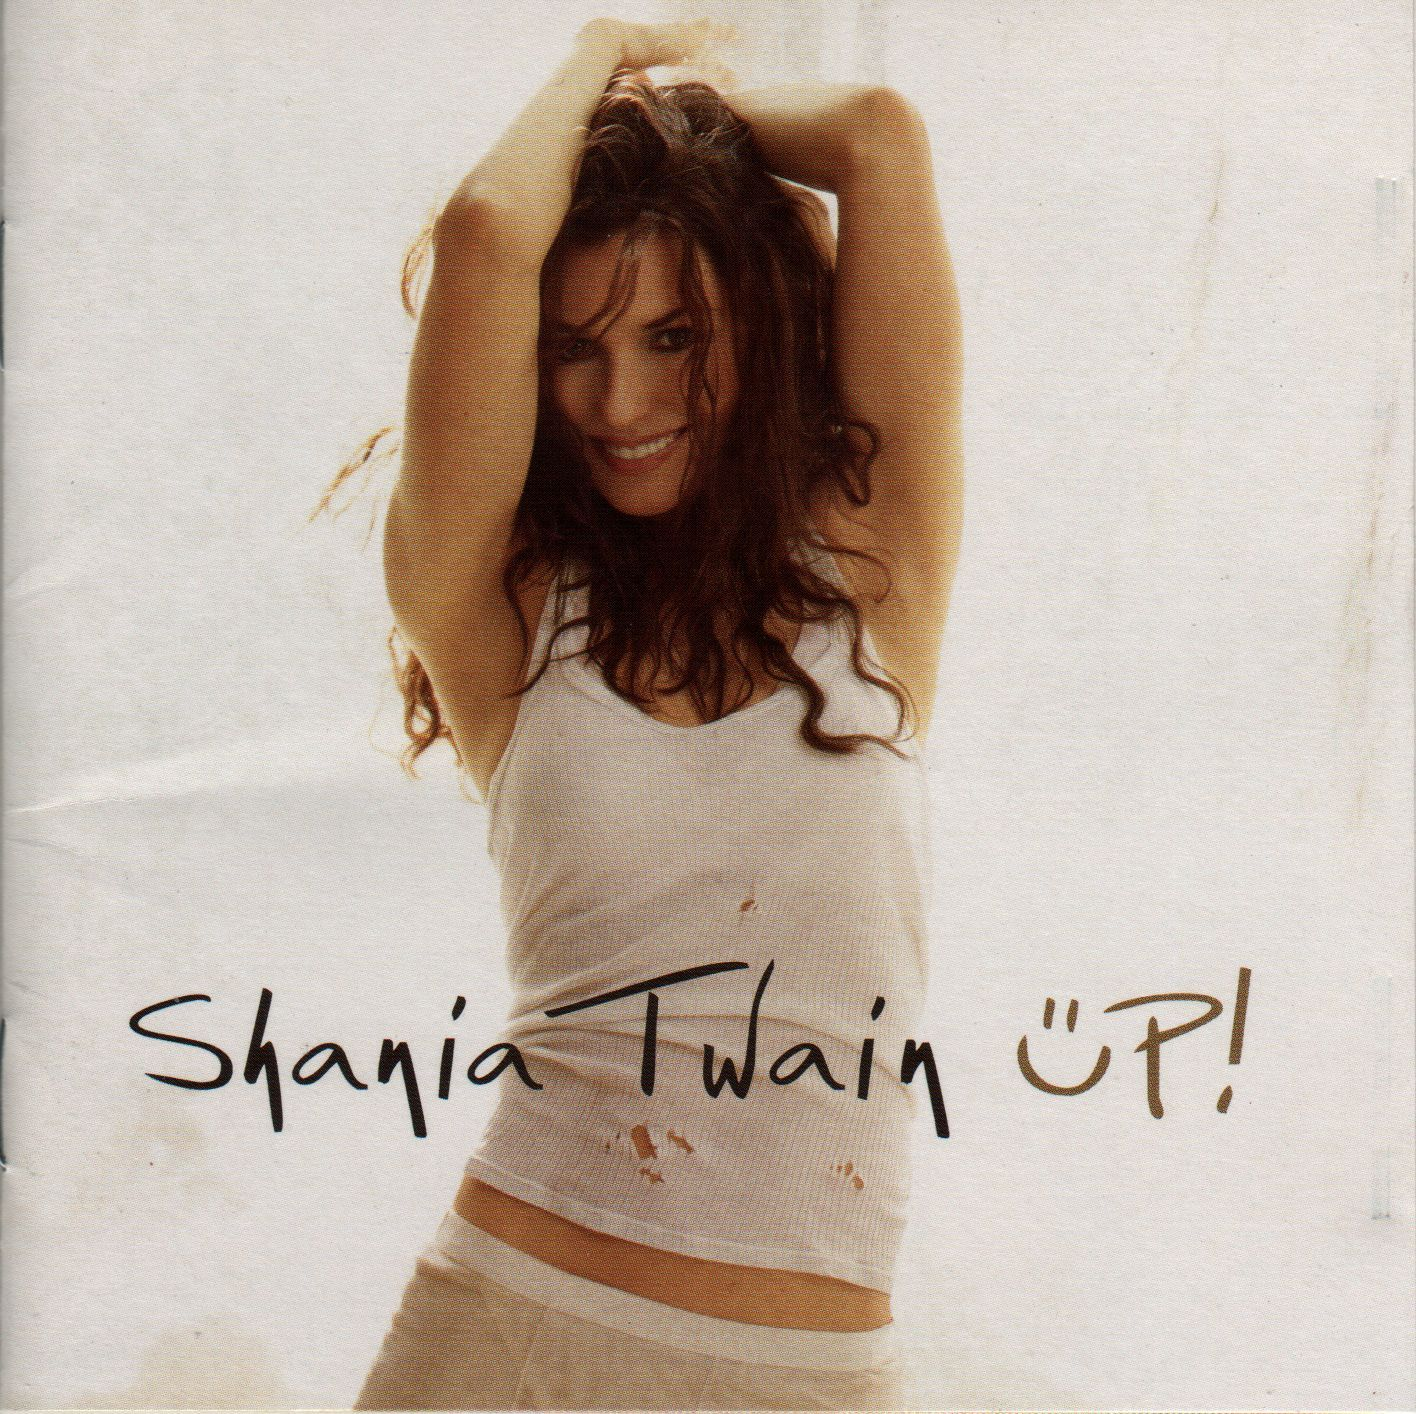 Shania Twain - Up! album cover